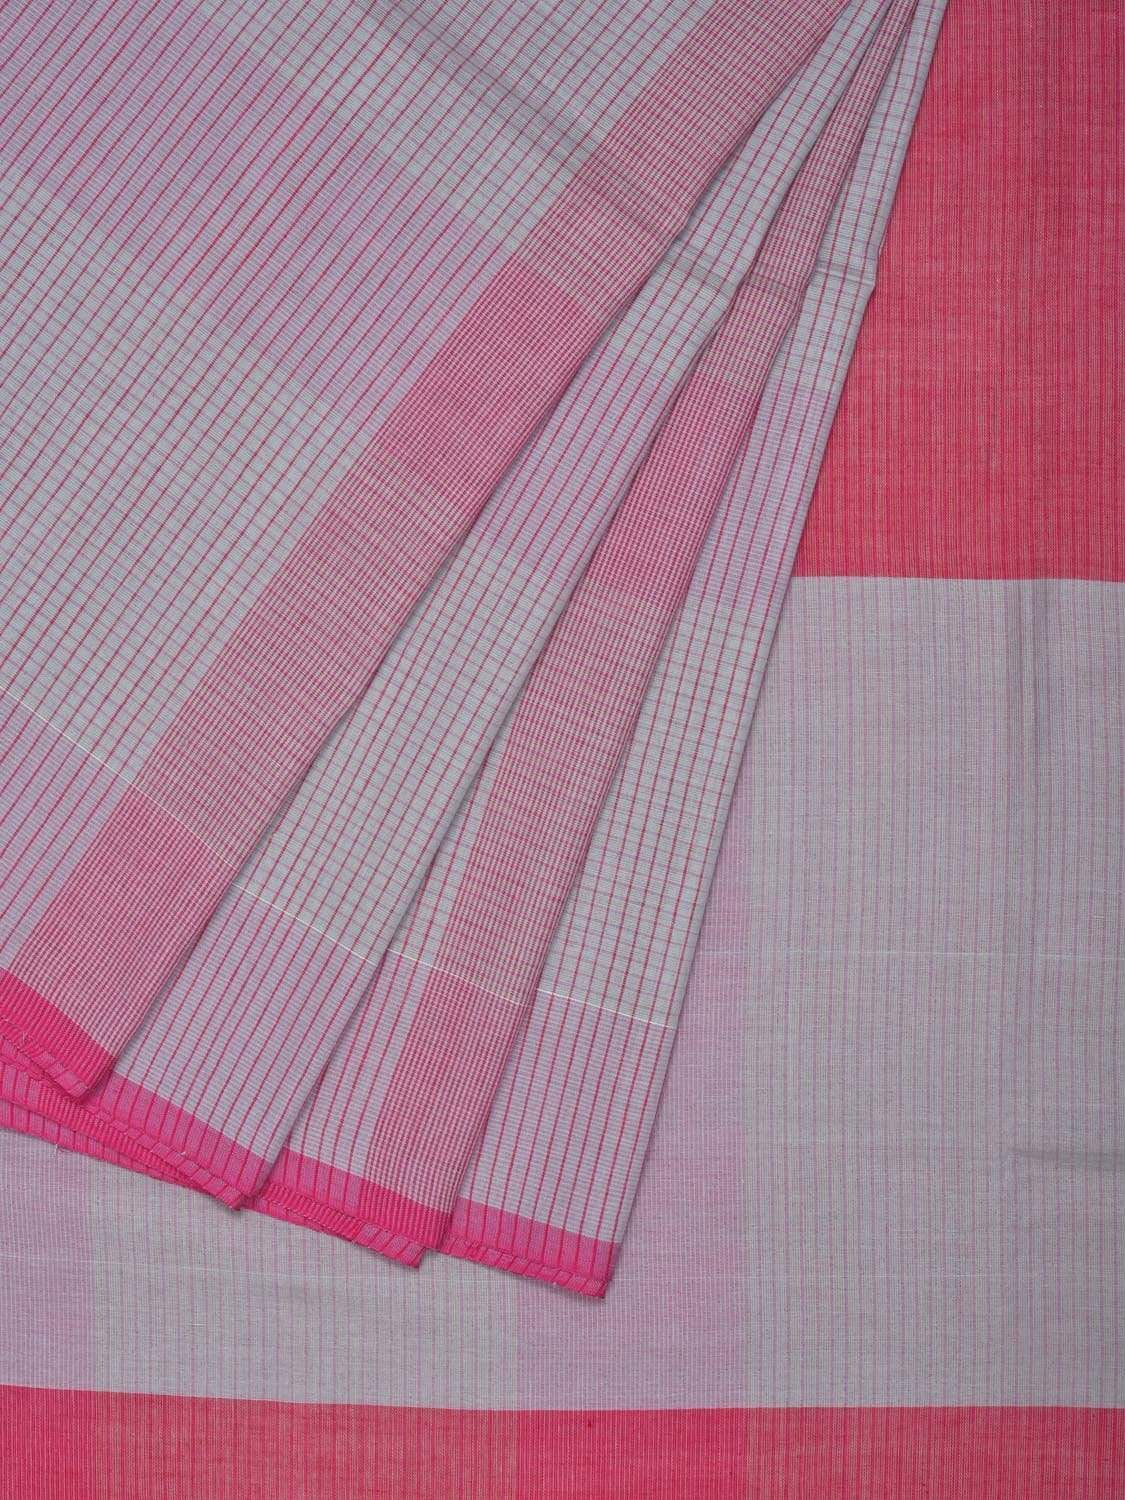 Grey and Pink Organic Cotton Handloom Saree with Small Checks Design o0262